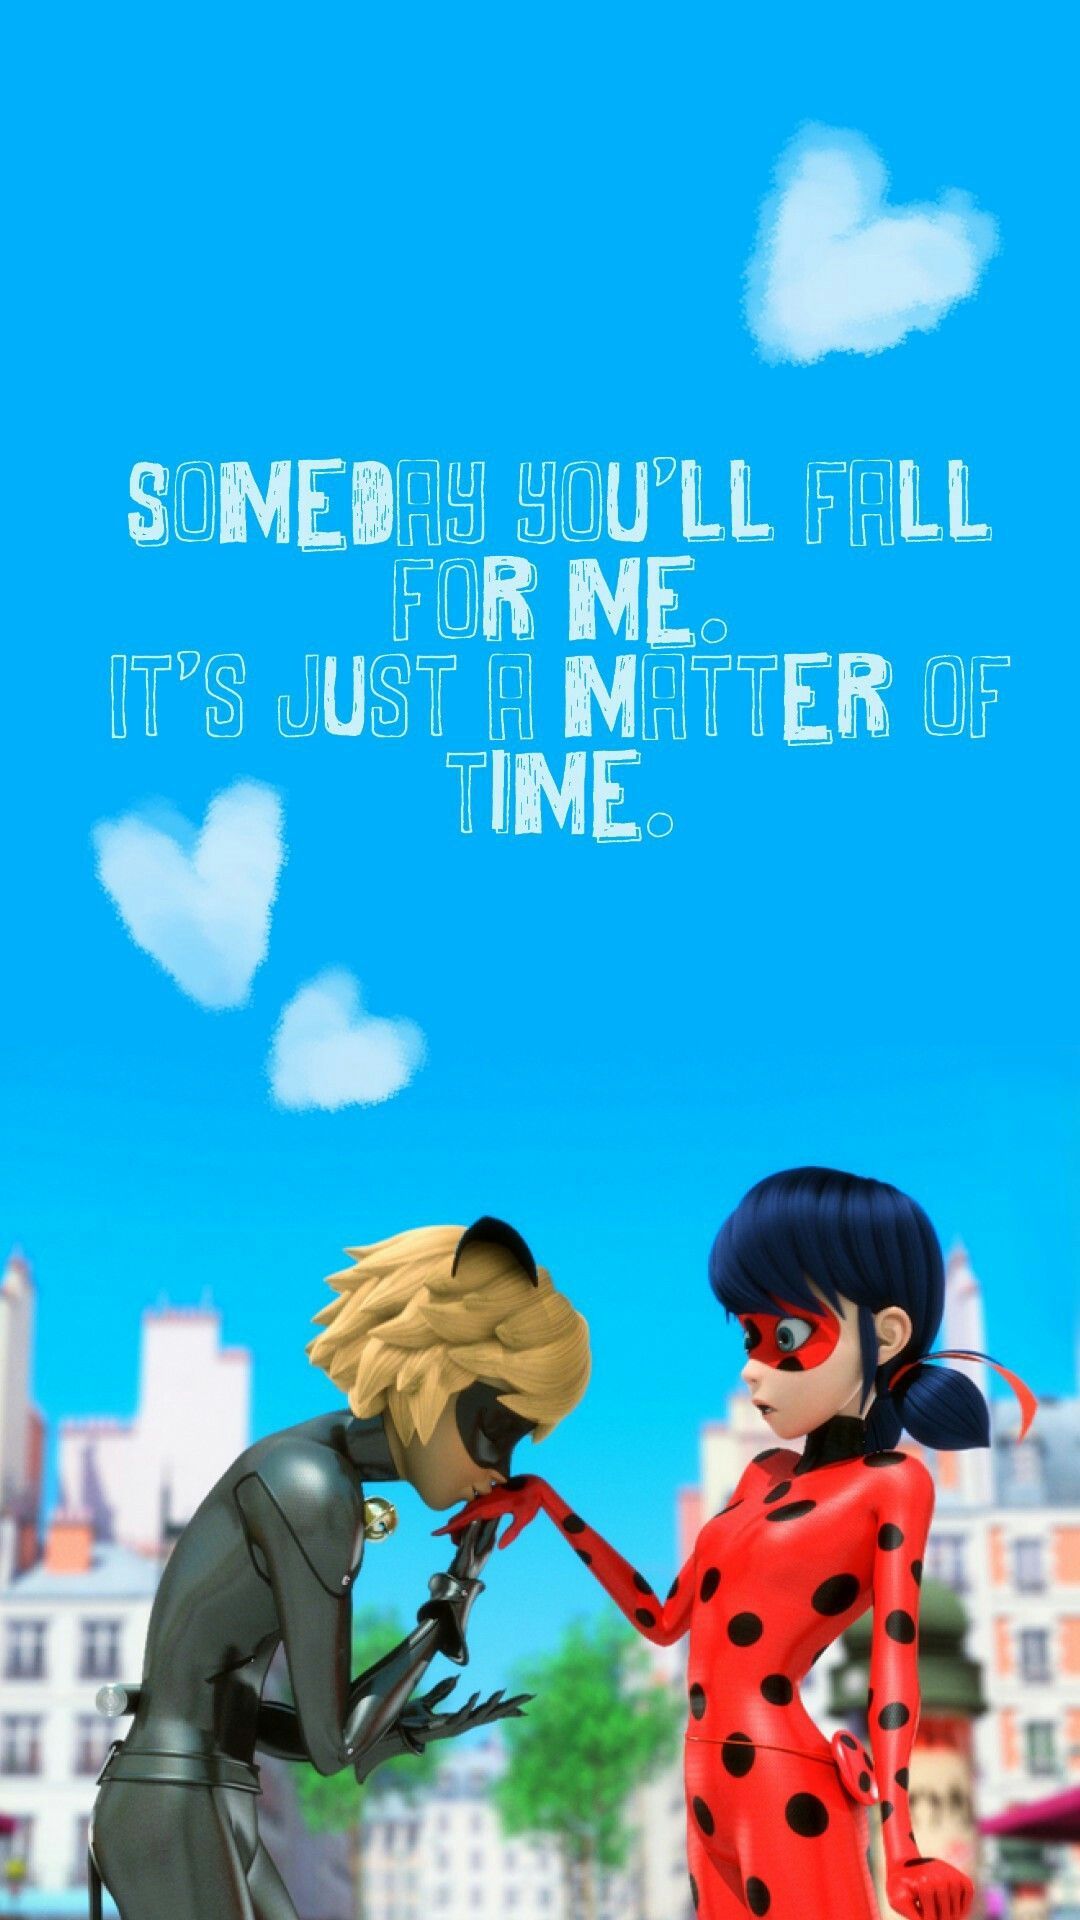 Miraculousladybug Edit Wallpaper All Credit To The Creator Amour Chasse Croise Miraculous Ladybug Wallpaper Miraculous Wallpaper Miraculous Ladybug Oc